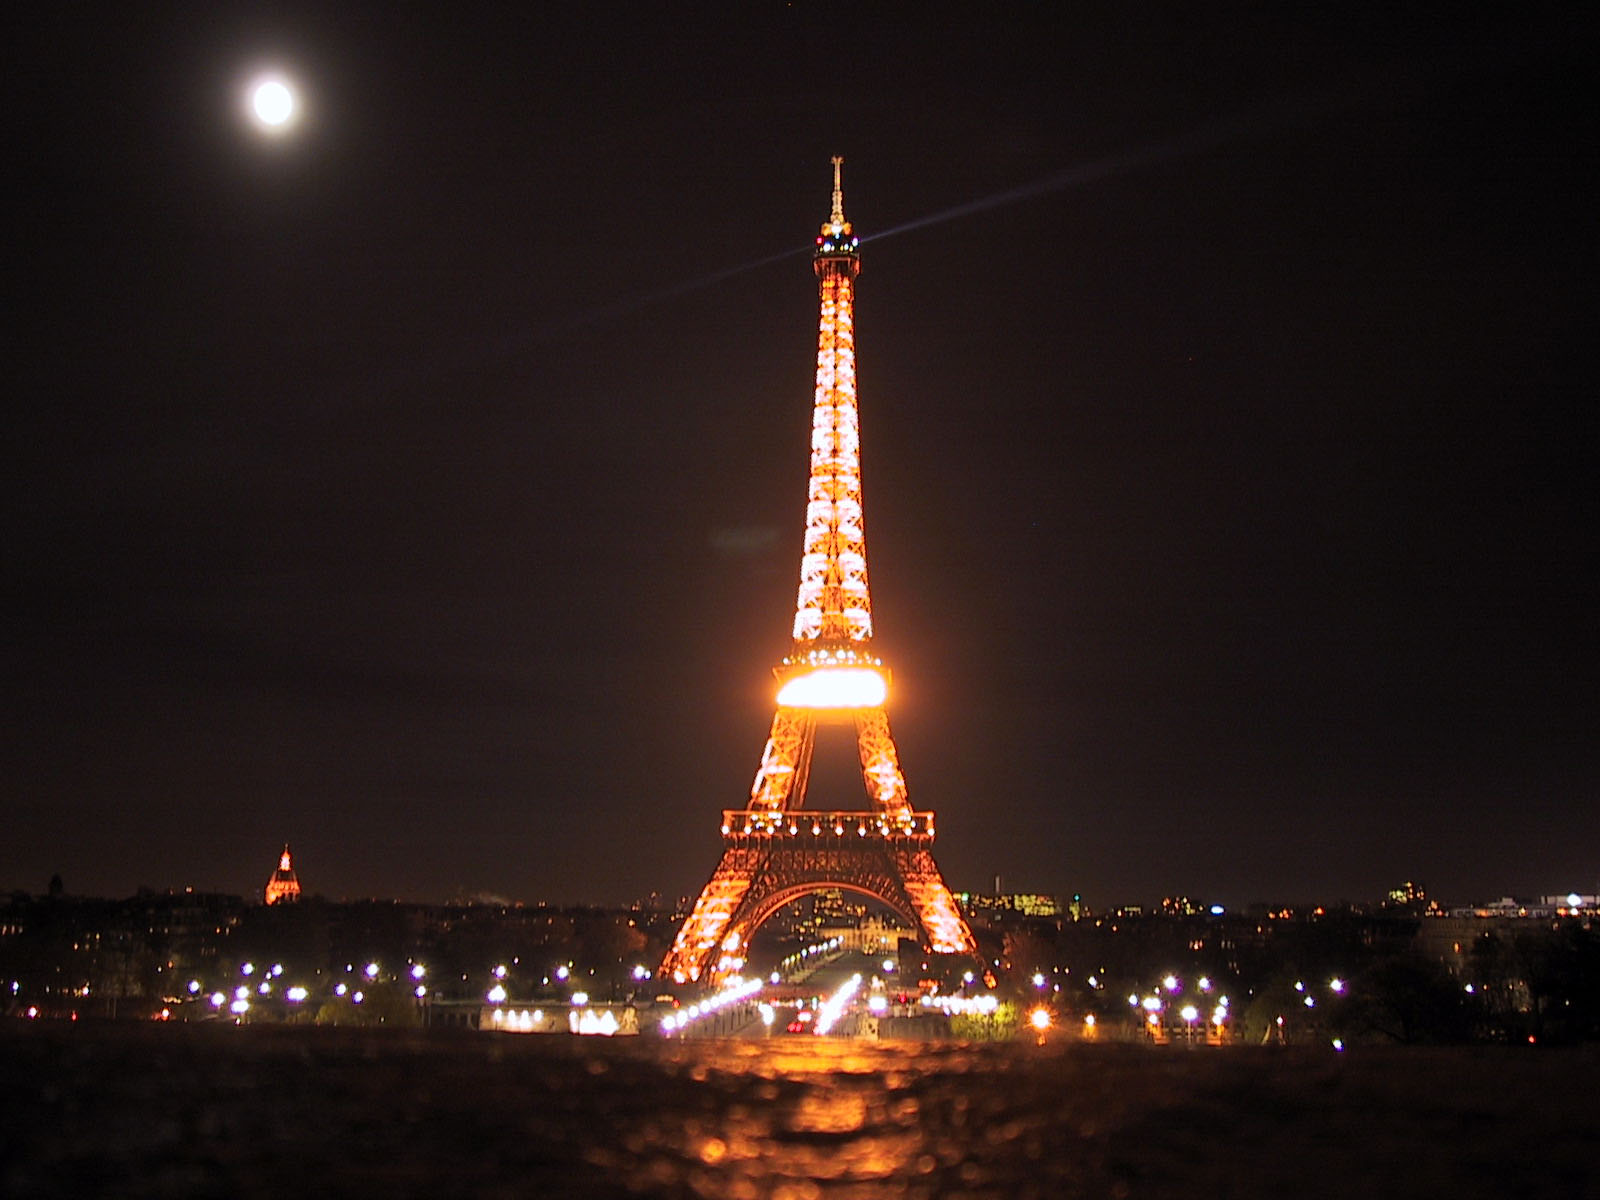 Eiffel tower lights, under moonlight, paris